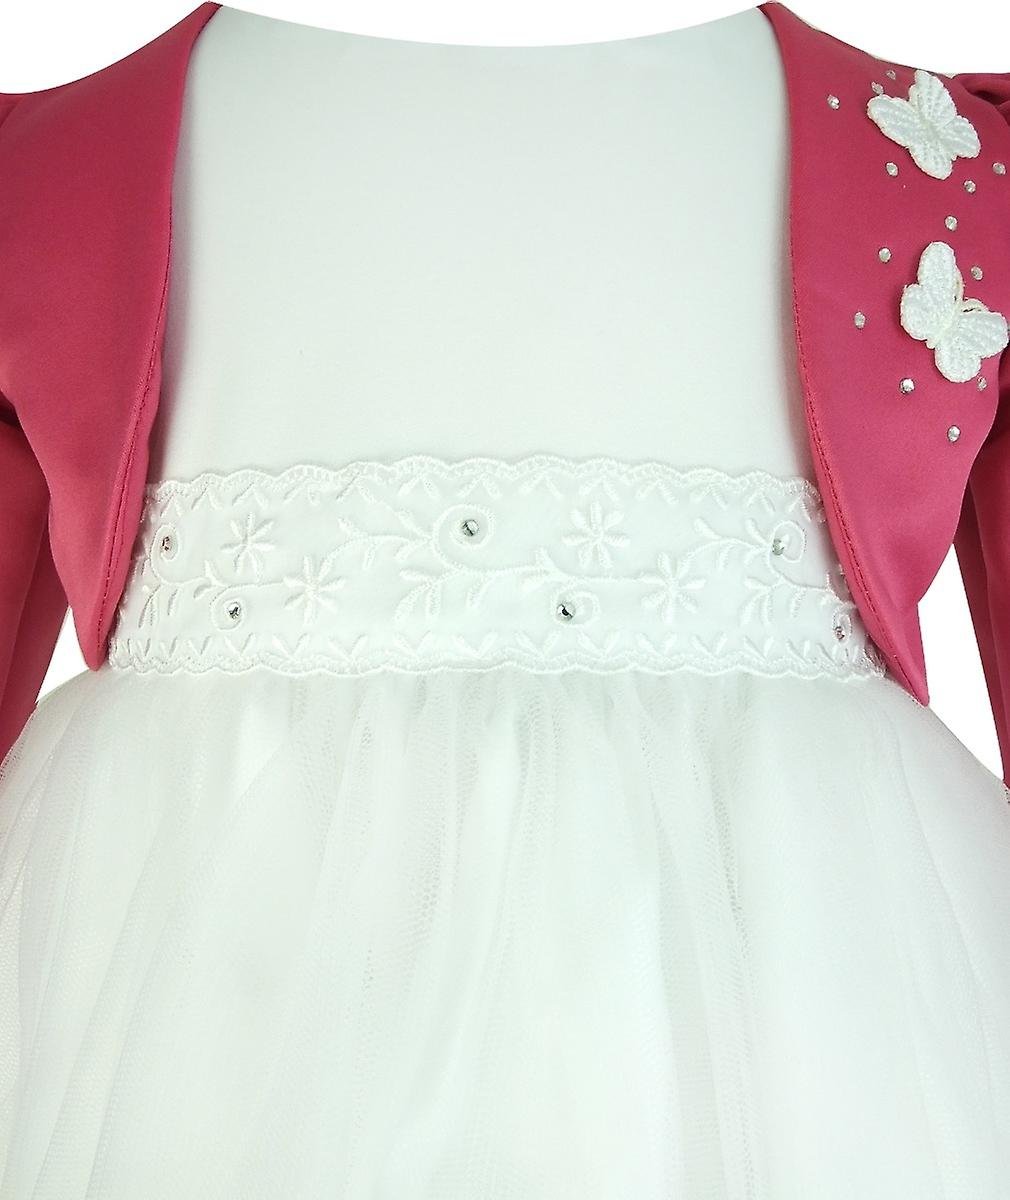 Frazer & James White Sparkle Christening Wedding Dress with Pink Butterfly Bolero Jacket